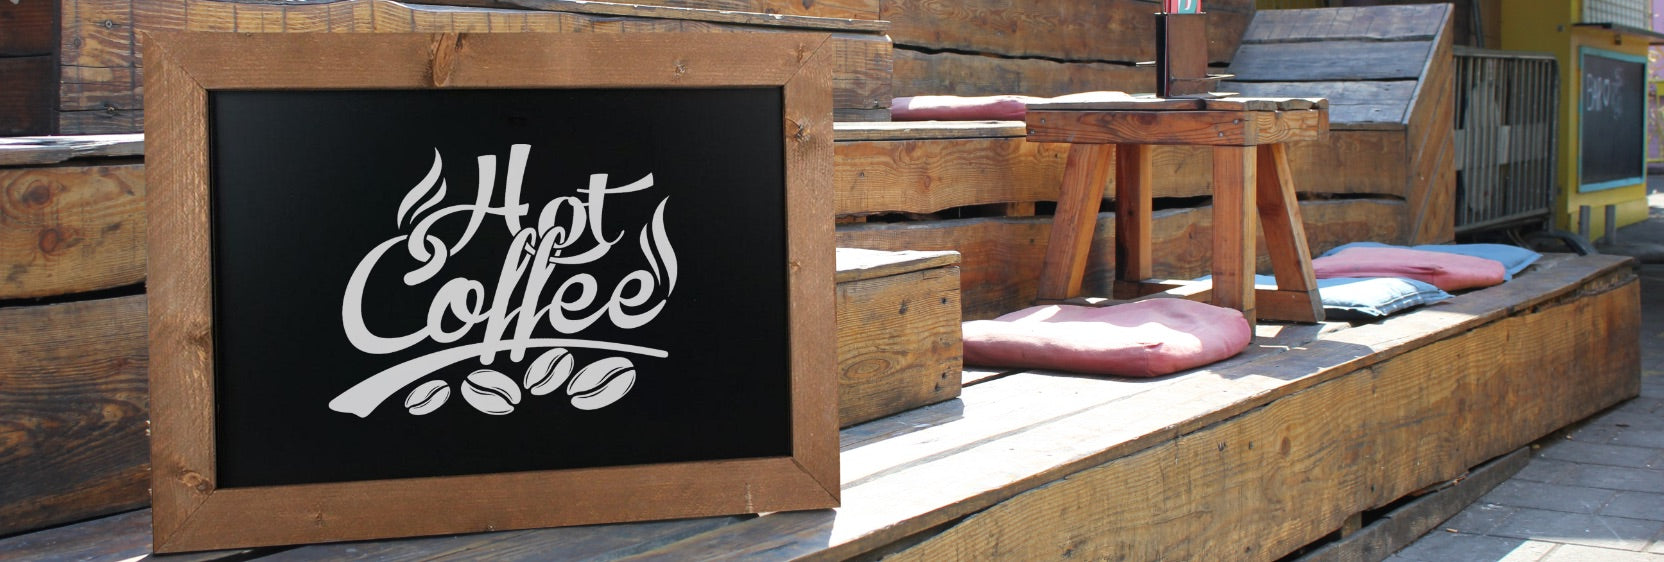 40 x 130cm Chalkboards at display-sign.co.uk